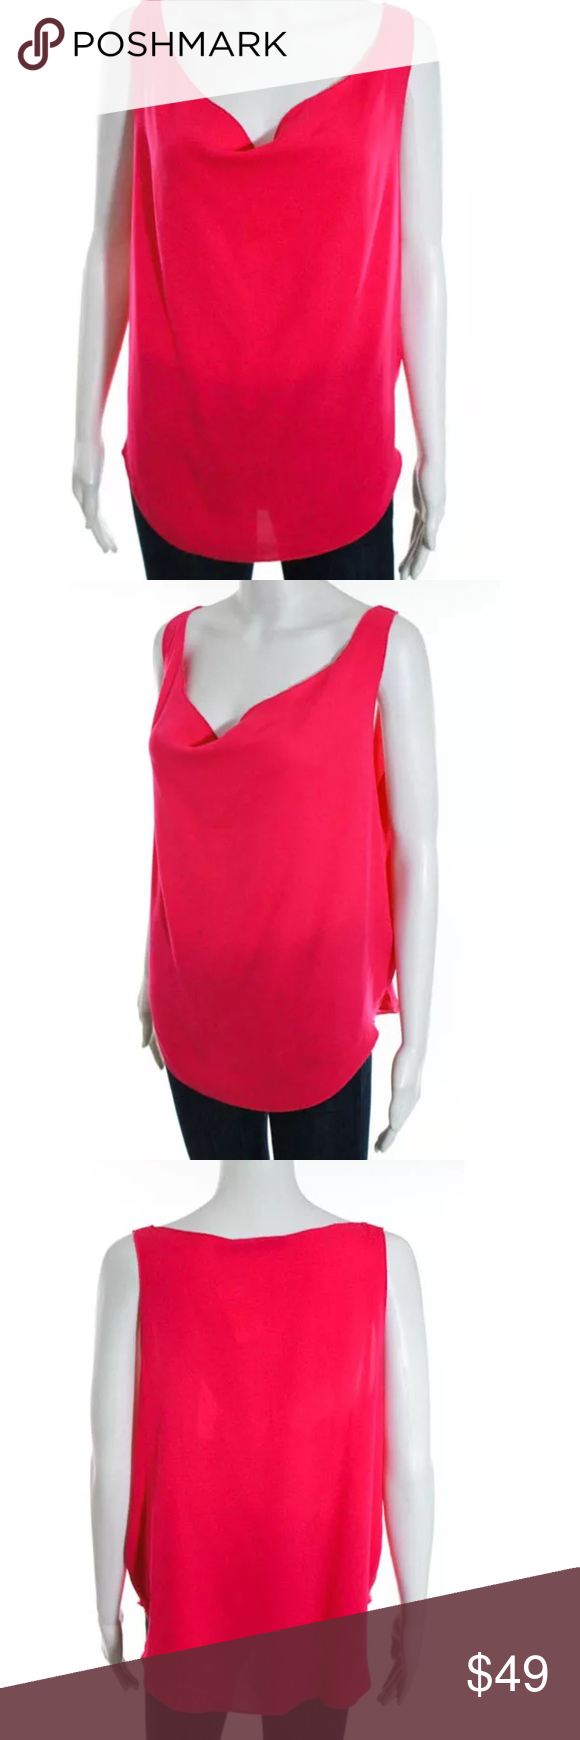 Alice + Olivia pink silk top Sz small Silk draped front top in magenta pink Alice + Olivia Tops Blouses